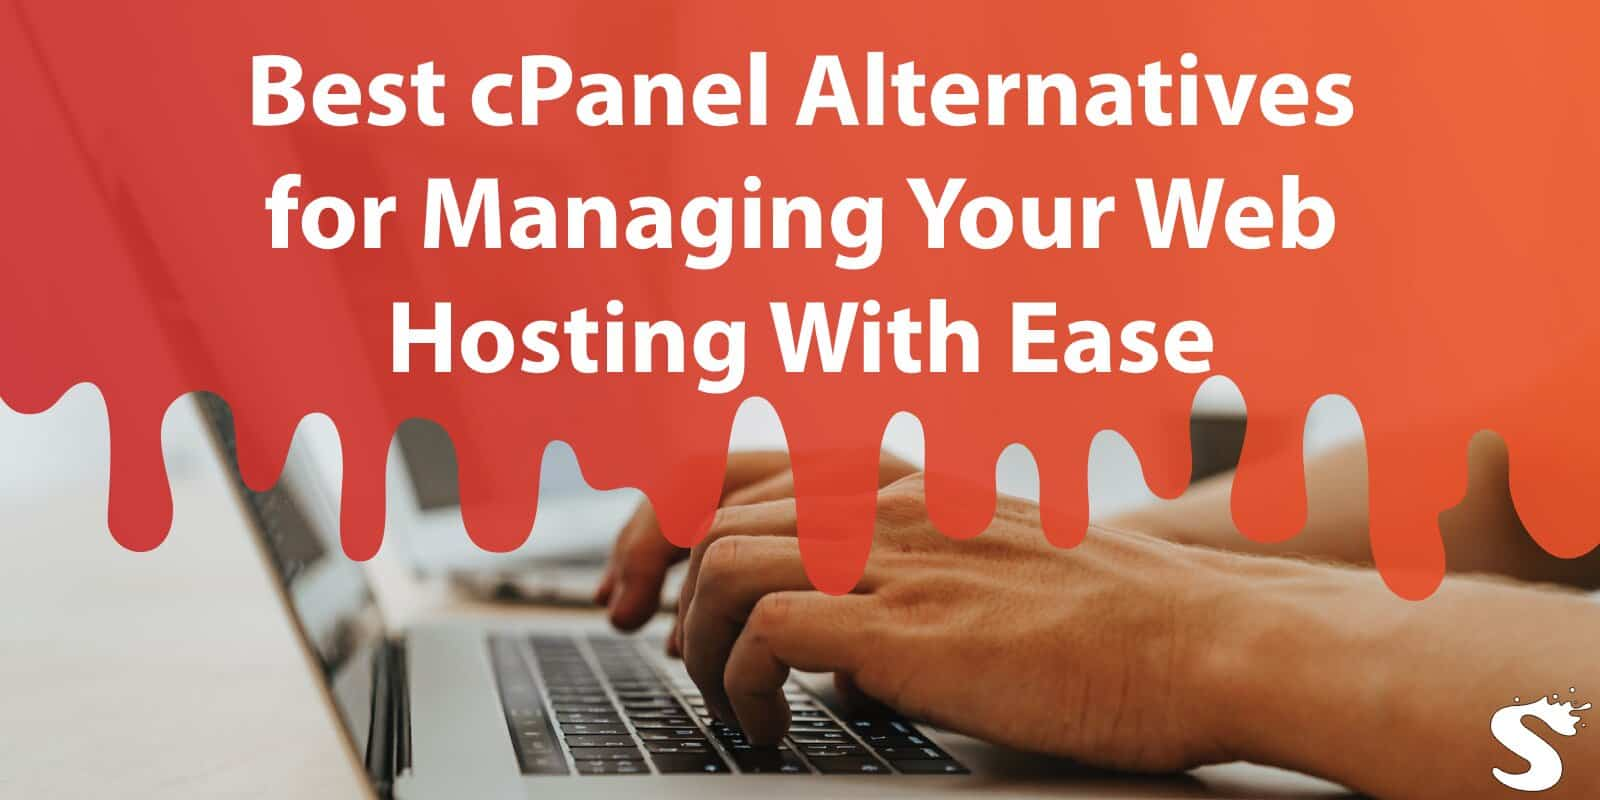 Best cPanel Alternatives for Managing Your Web Hosting With Ease